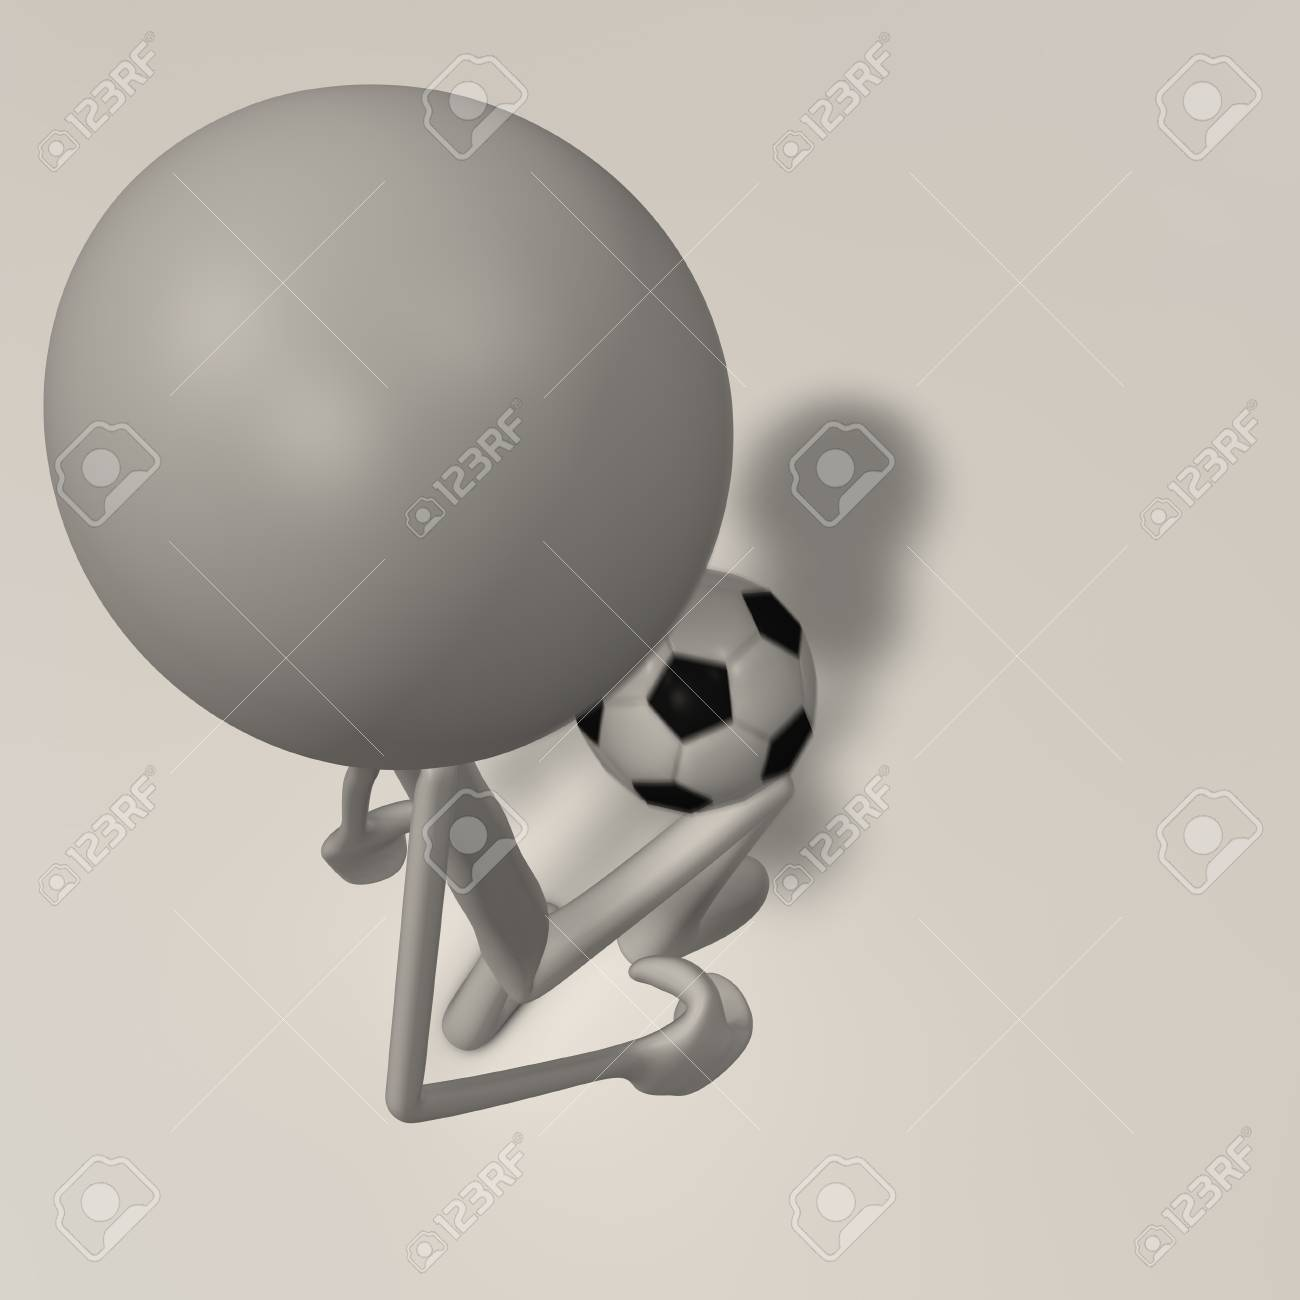 a figure is juggling a football with his feet - top view Stock Photo - 13147736